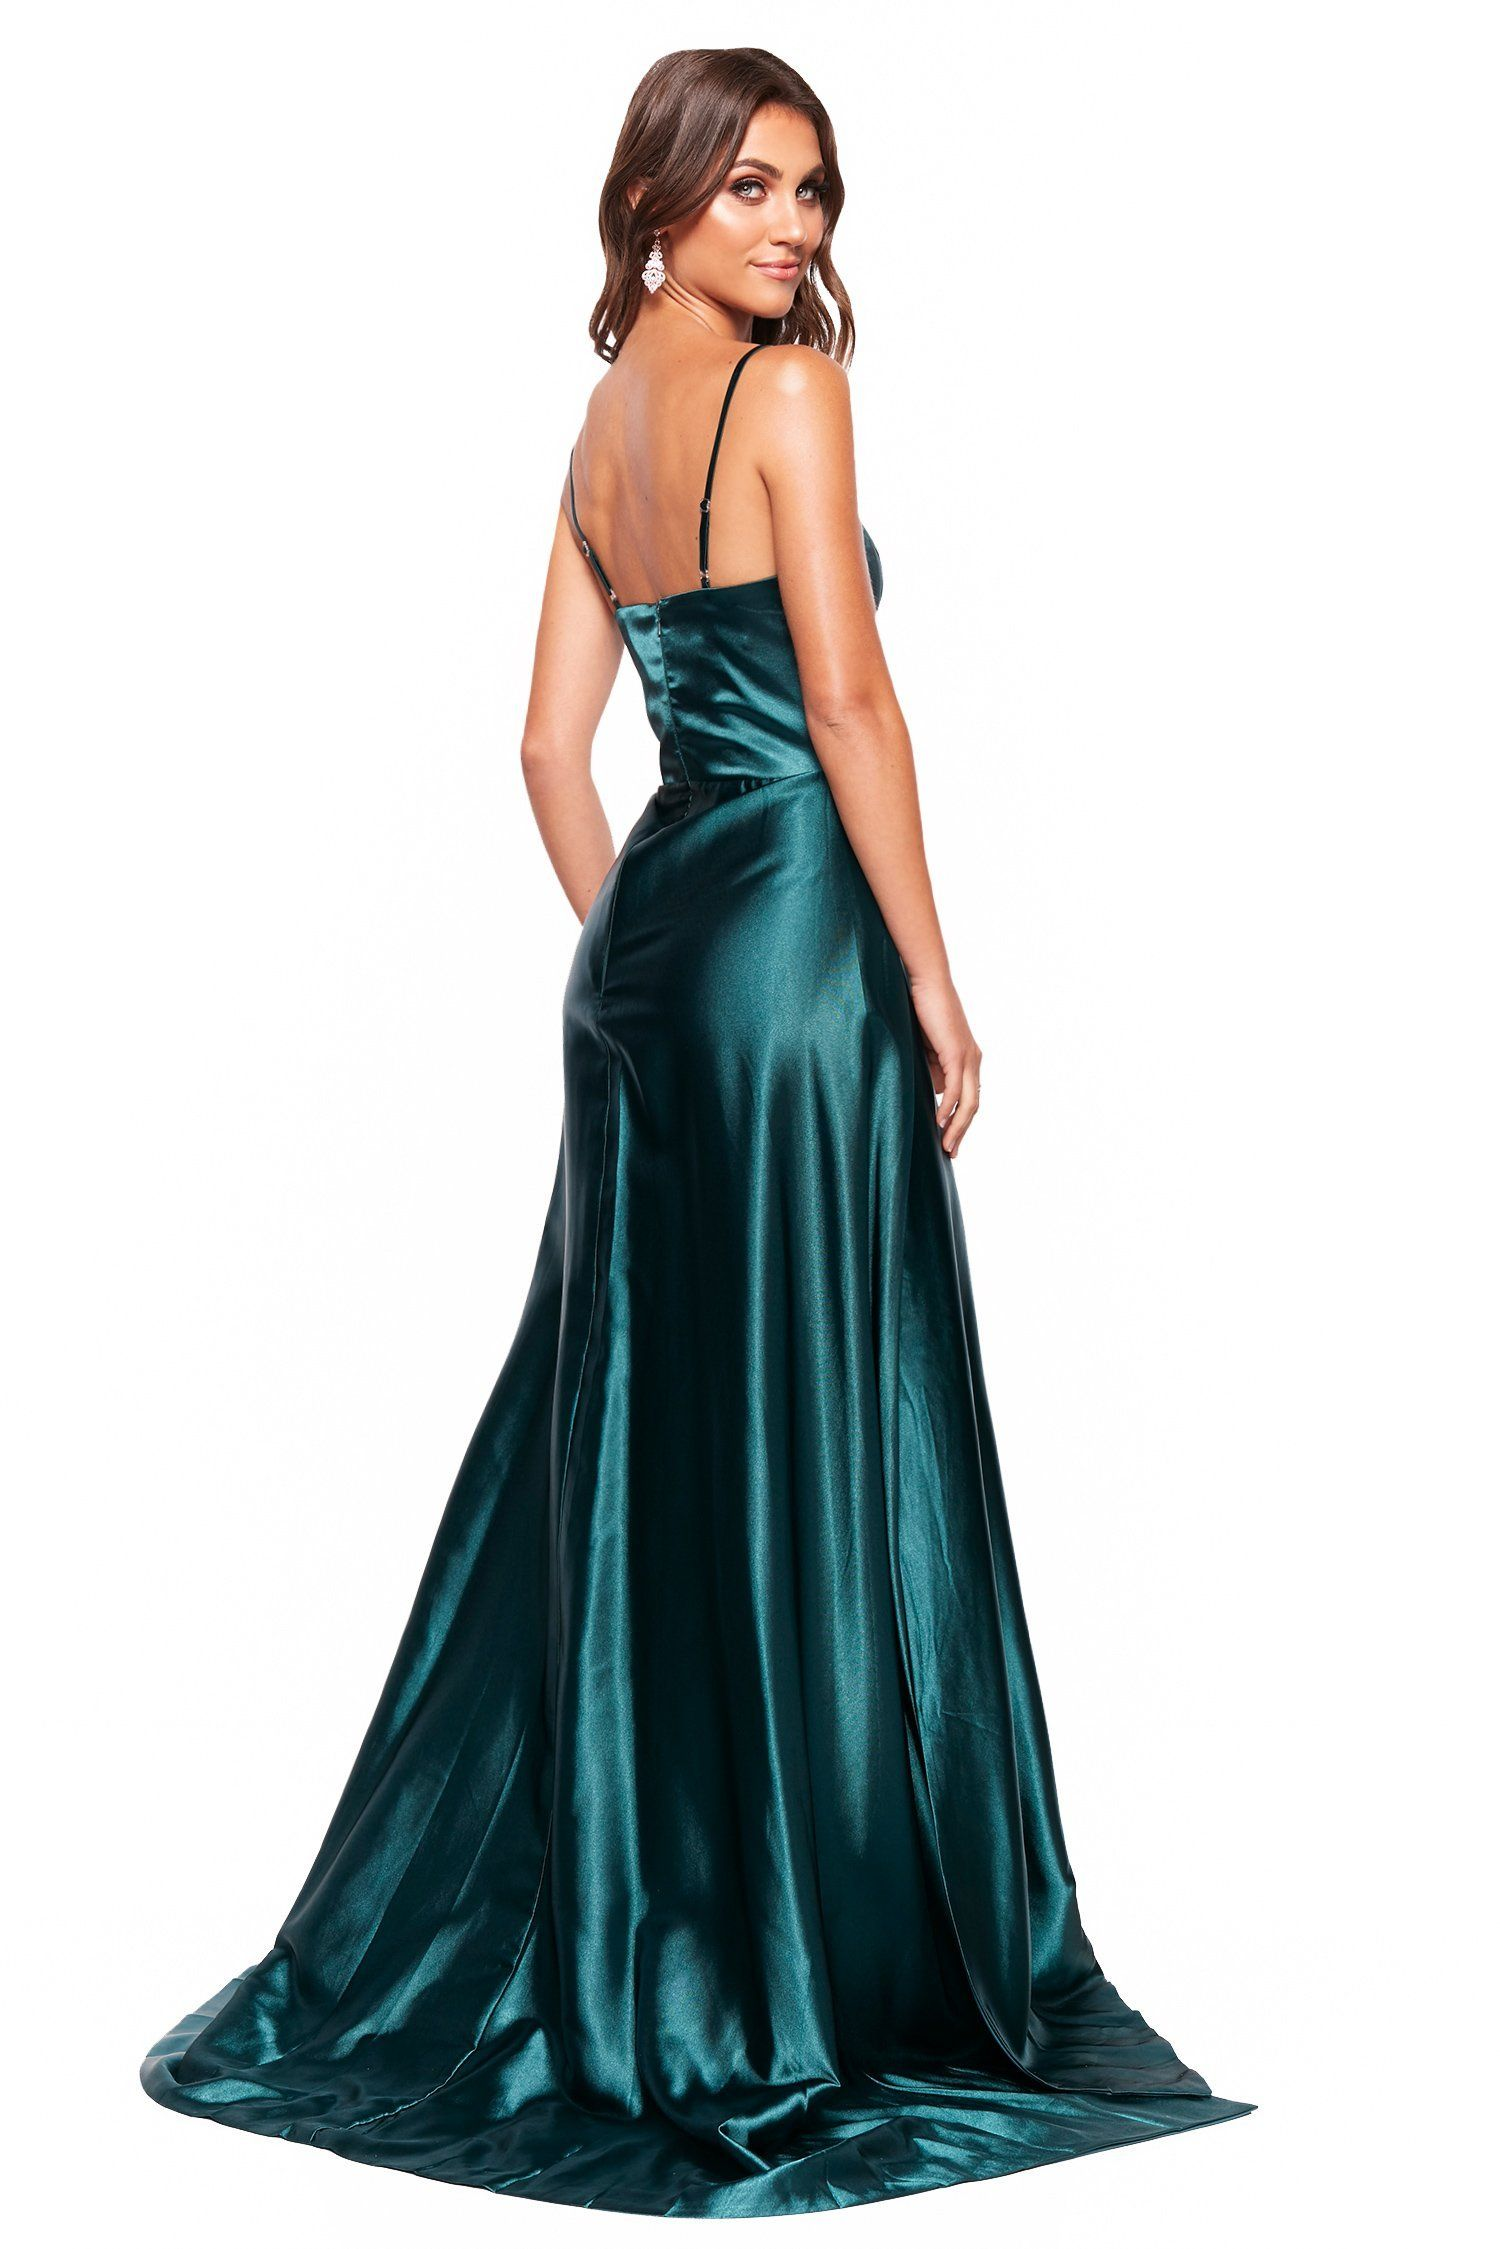 259b0147d40 A N Vanessa - Emerald Satin Gown With Mermaid Train and Slit